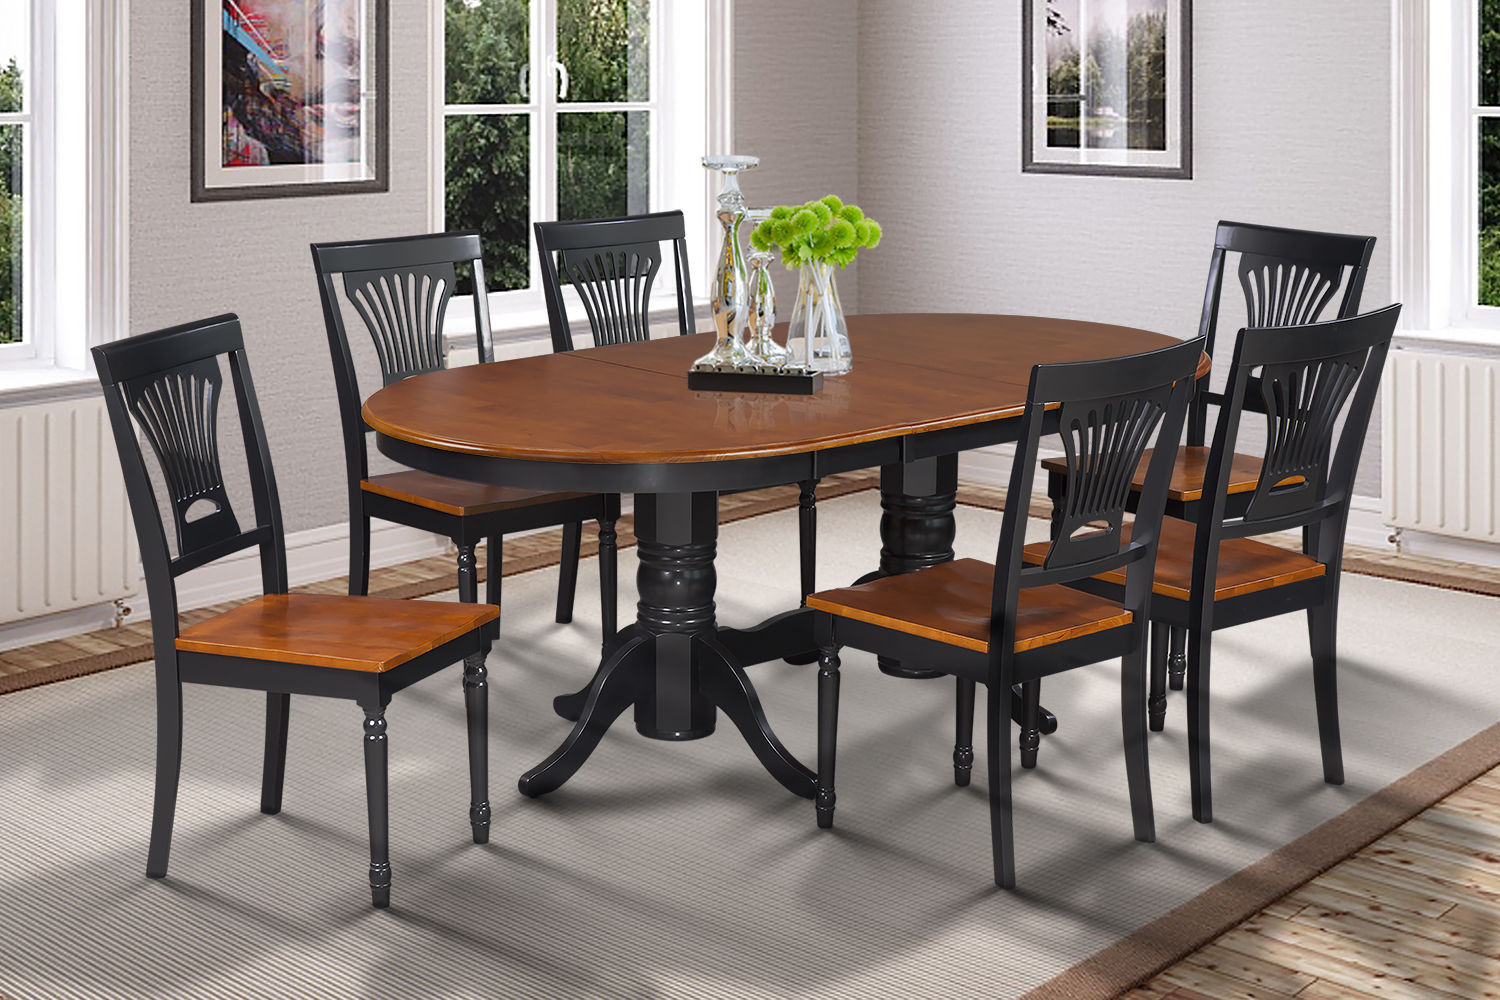 OVAL DINETTE DINING ROOM TABLE SET WITH WOODEN SEATS  IN BLACK & CHERRY